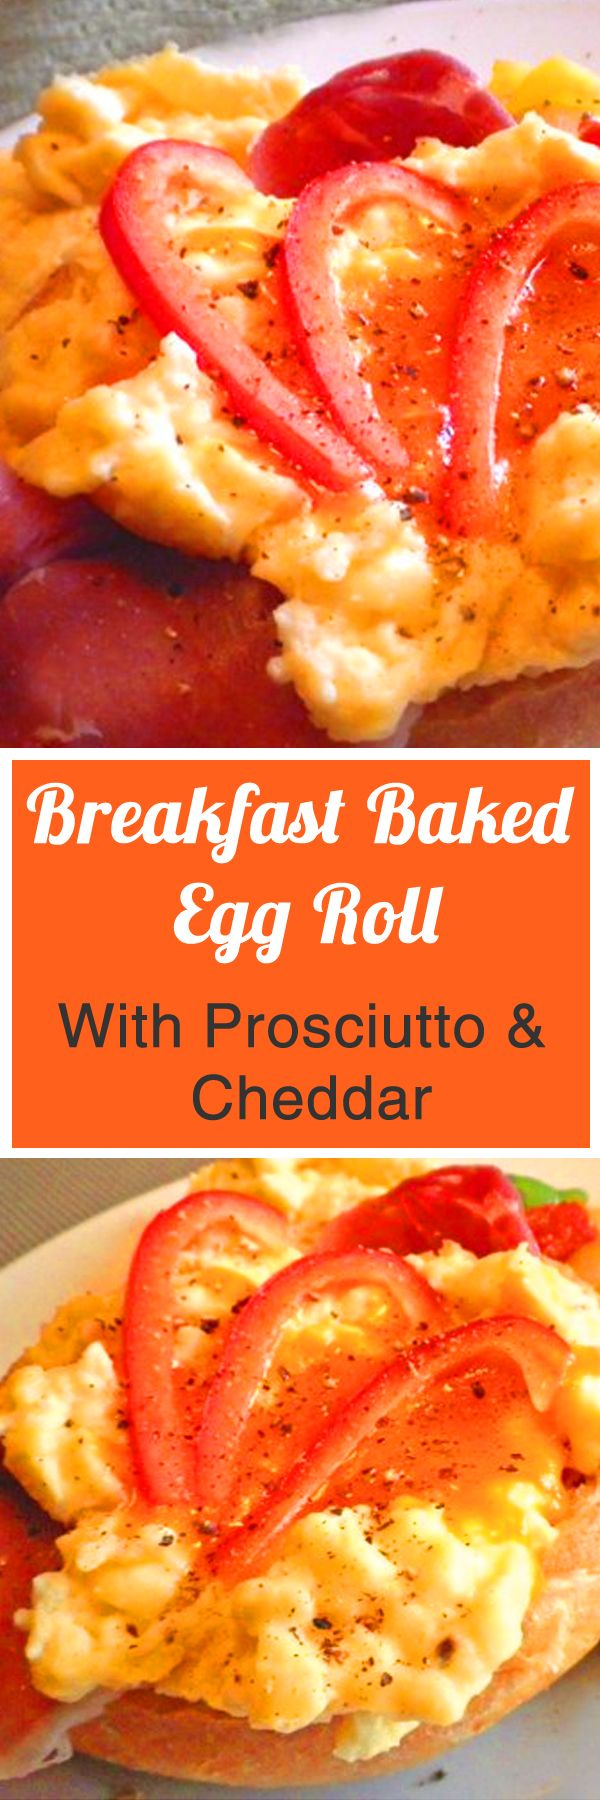 Breakfast Baked Egg Roll With Prosciutto & Cheddar. For more info, please visit http://www.recipezazz.com/